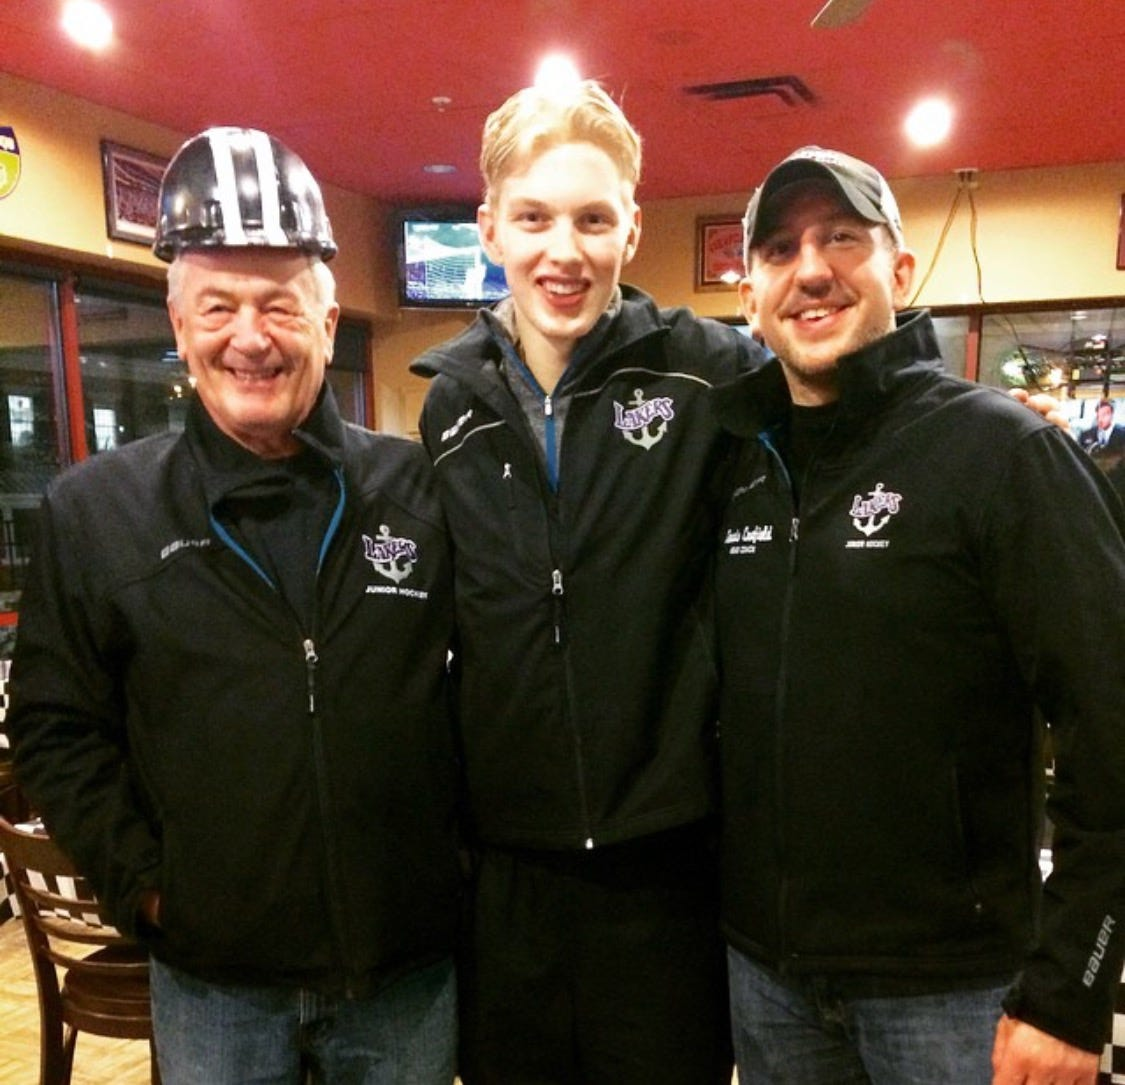 Dennis Canfield, right, and his father, Dennis Canfield Sr., pose with Matiss Kivlenieks after a game in 2015 with the Forest Lake Lakers of the former Minnesota Junior Hockey League.